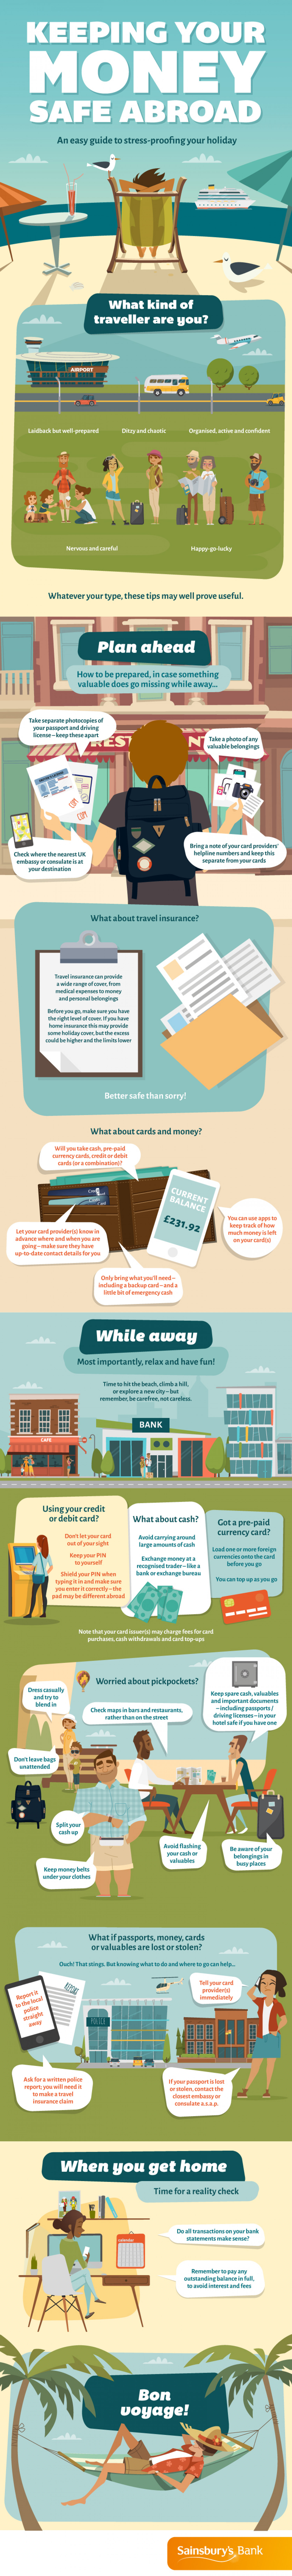 Keeping Your Money Safe Abroad Infographic